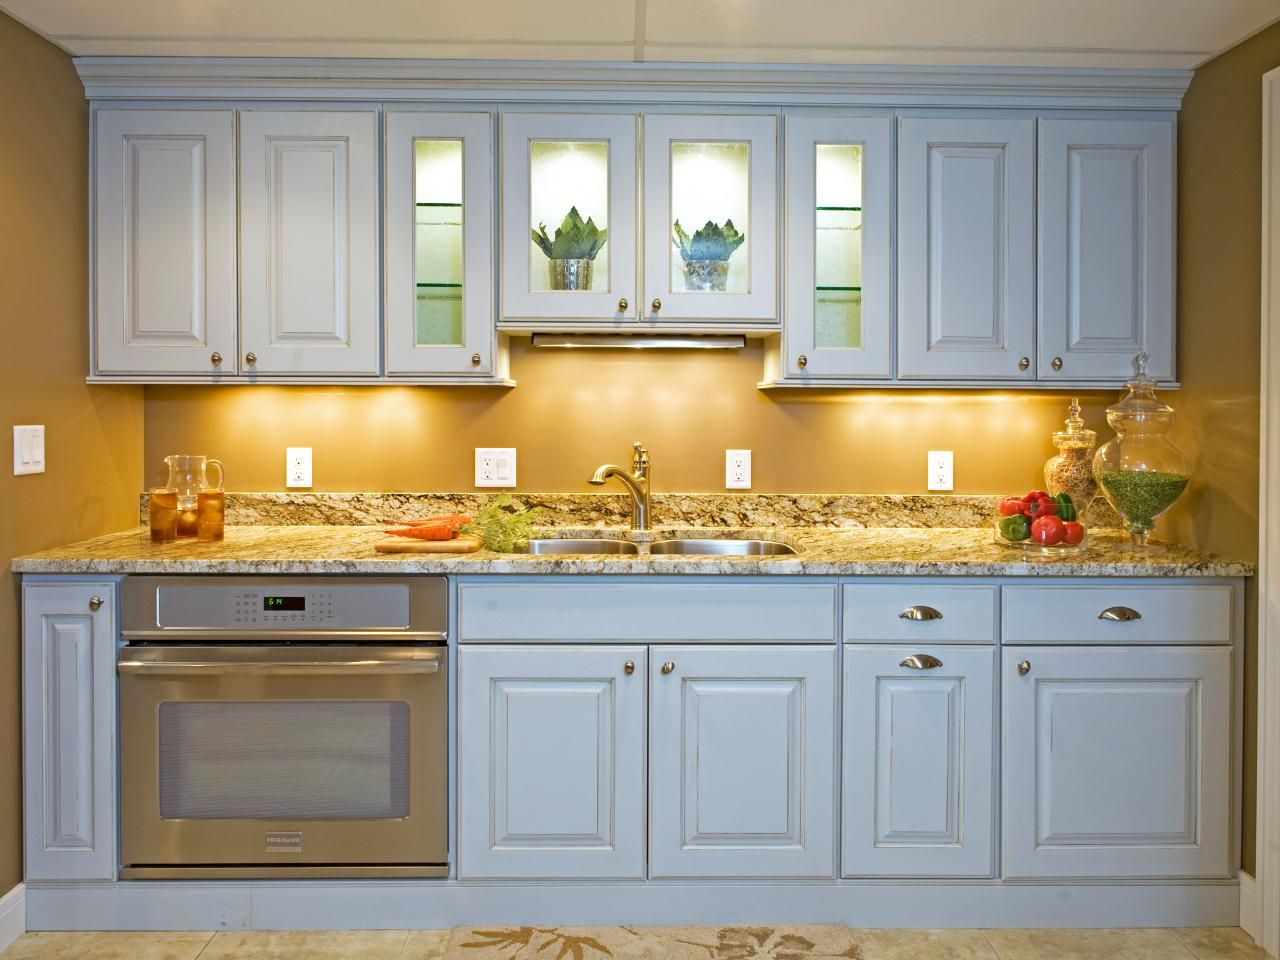 Custom Kitchen Islands Pictures Ideas Tips From Hgtv: Ideas For Refacing Kitchen Cabinets: HGTV Pictures & Tips